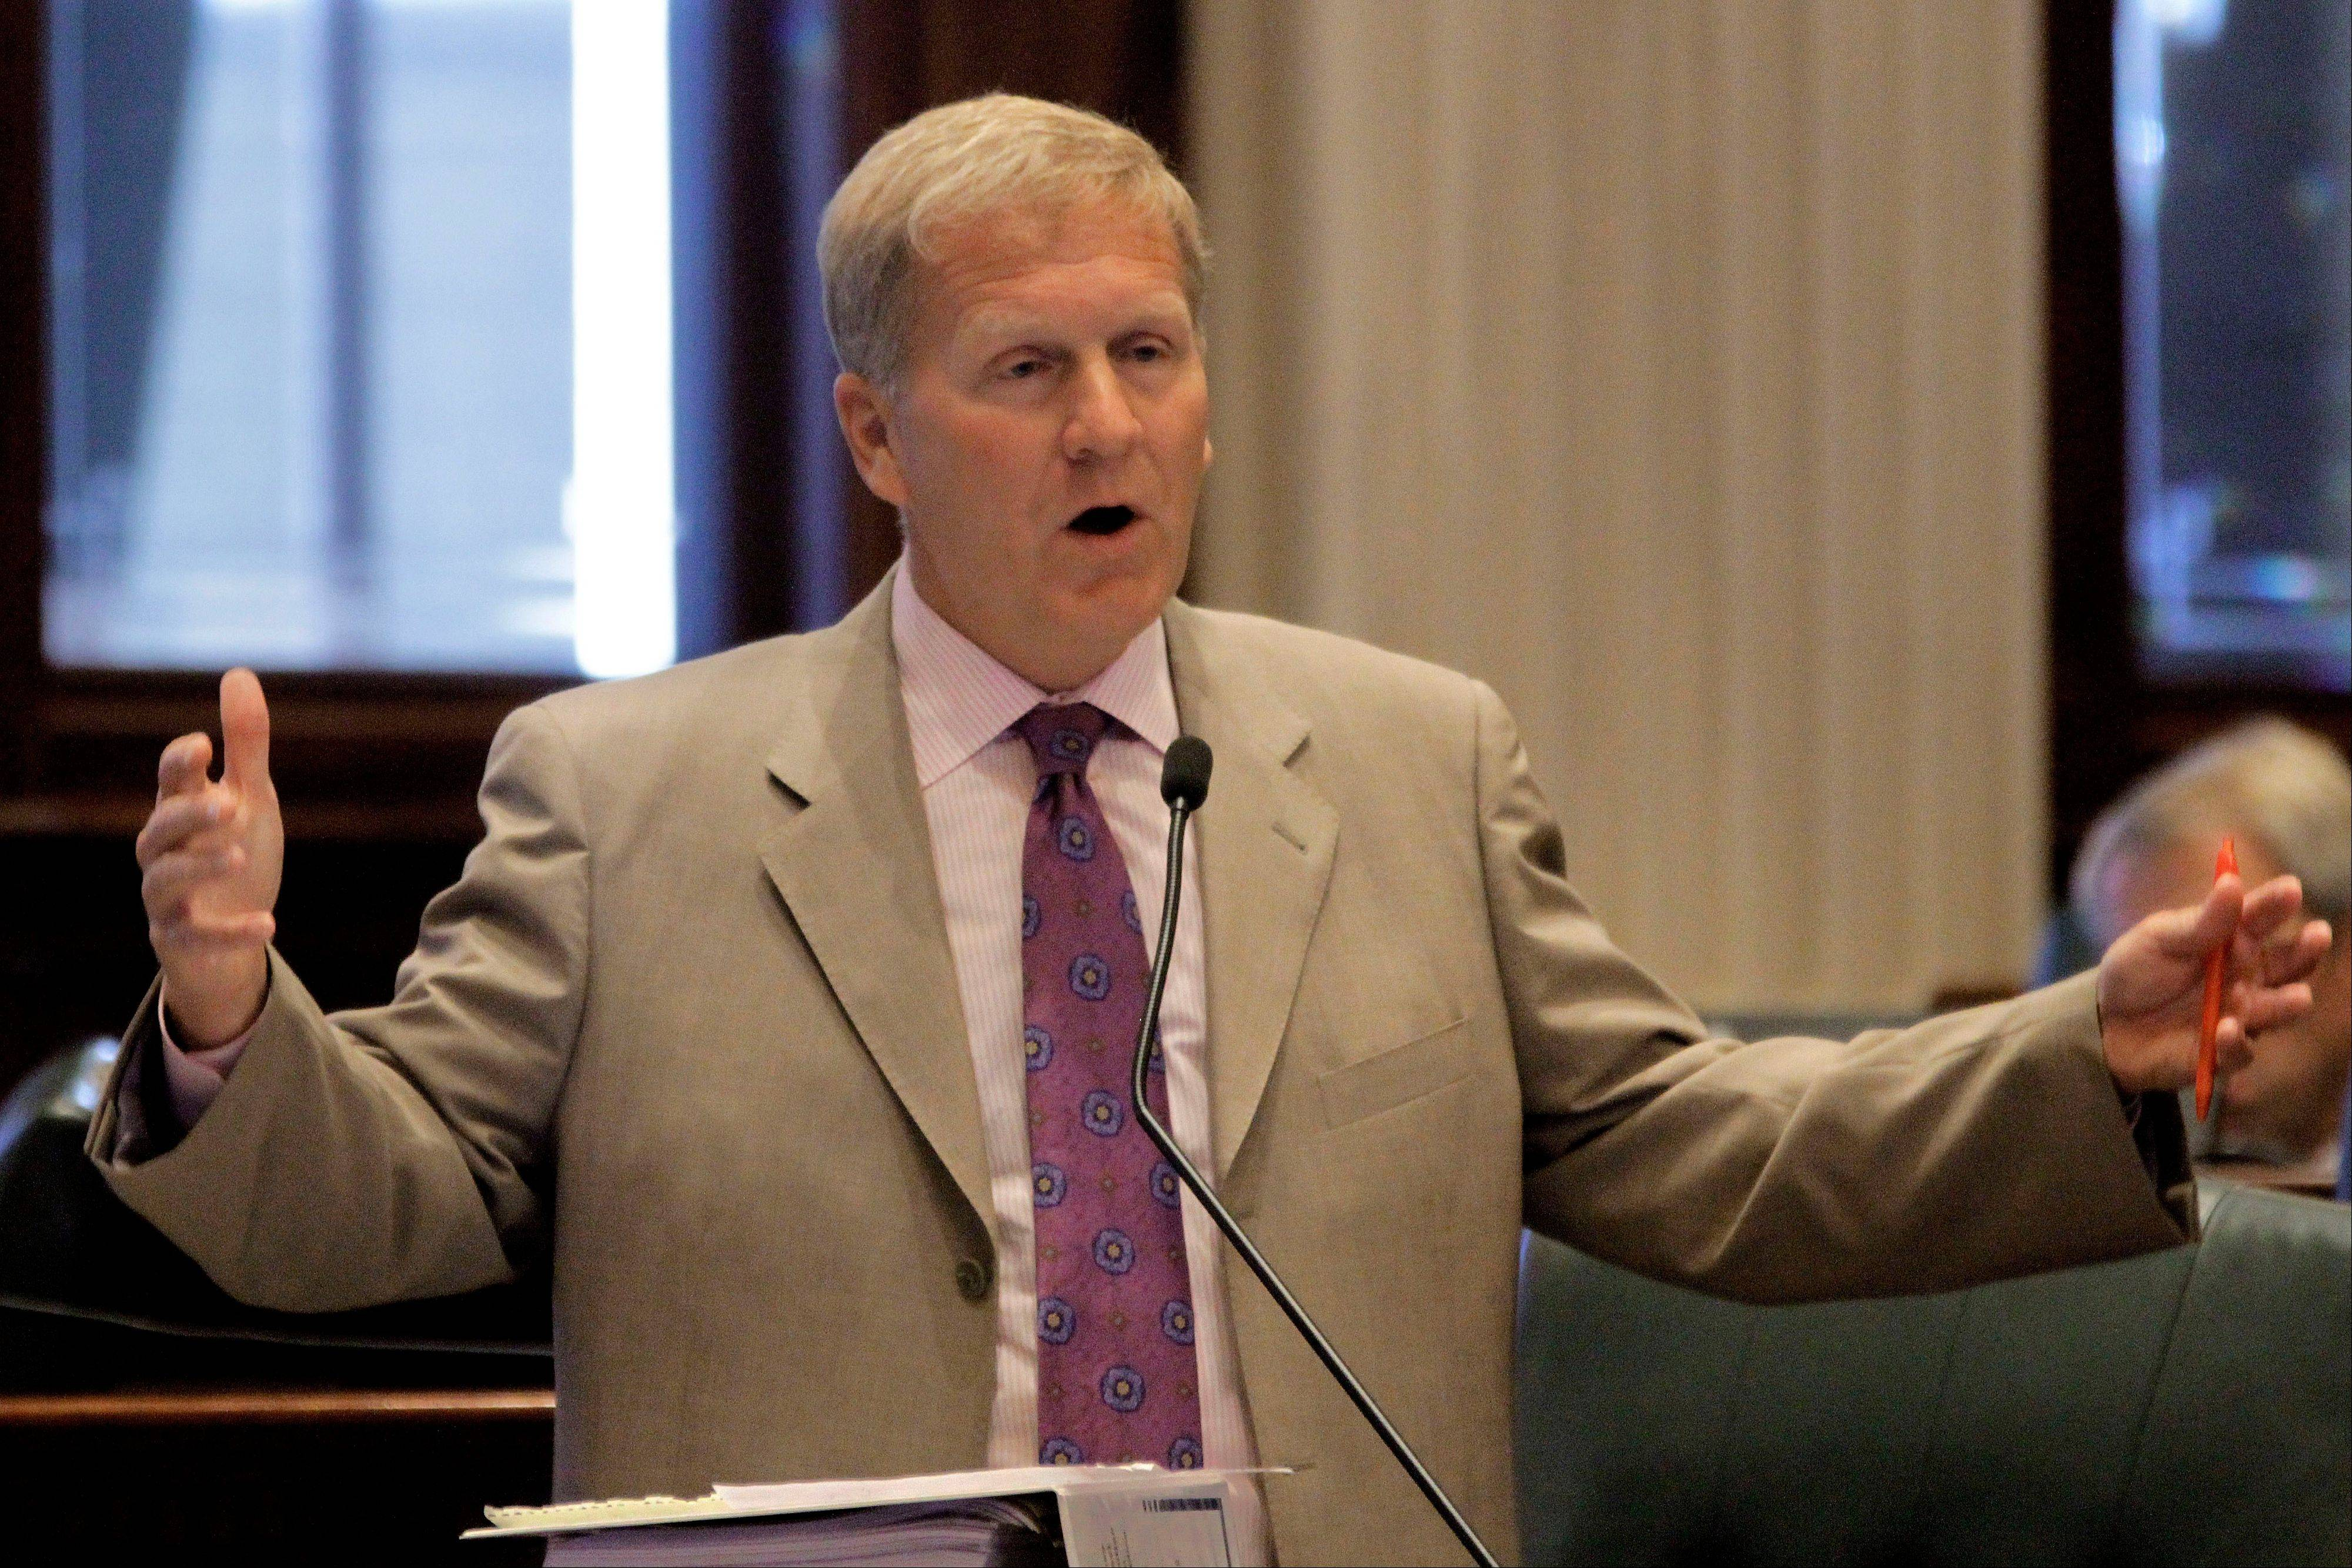 Illinois House Republican Leader Tom Cross of Oswego argues pension legislation during Friday's special session. Republicans, including Cross, have opposed shifting some of the state's pension costs to local schools.